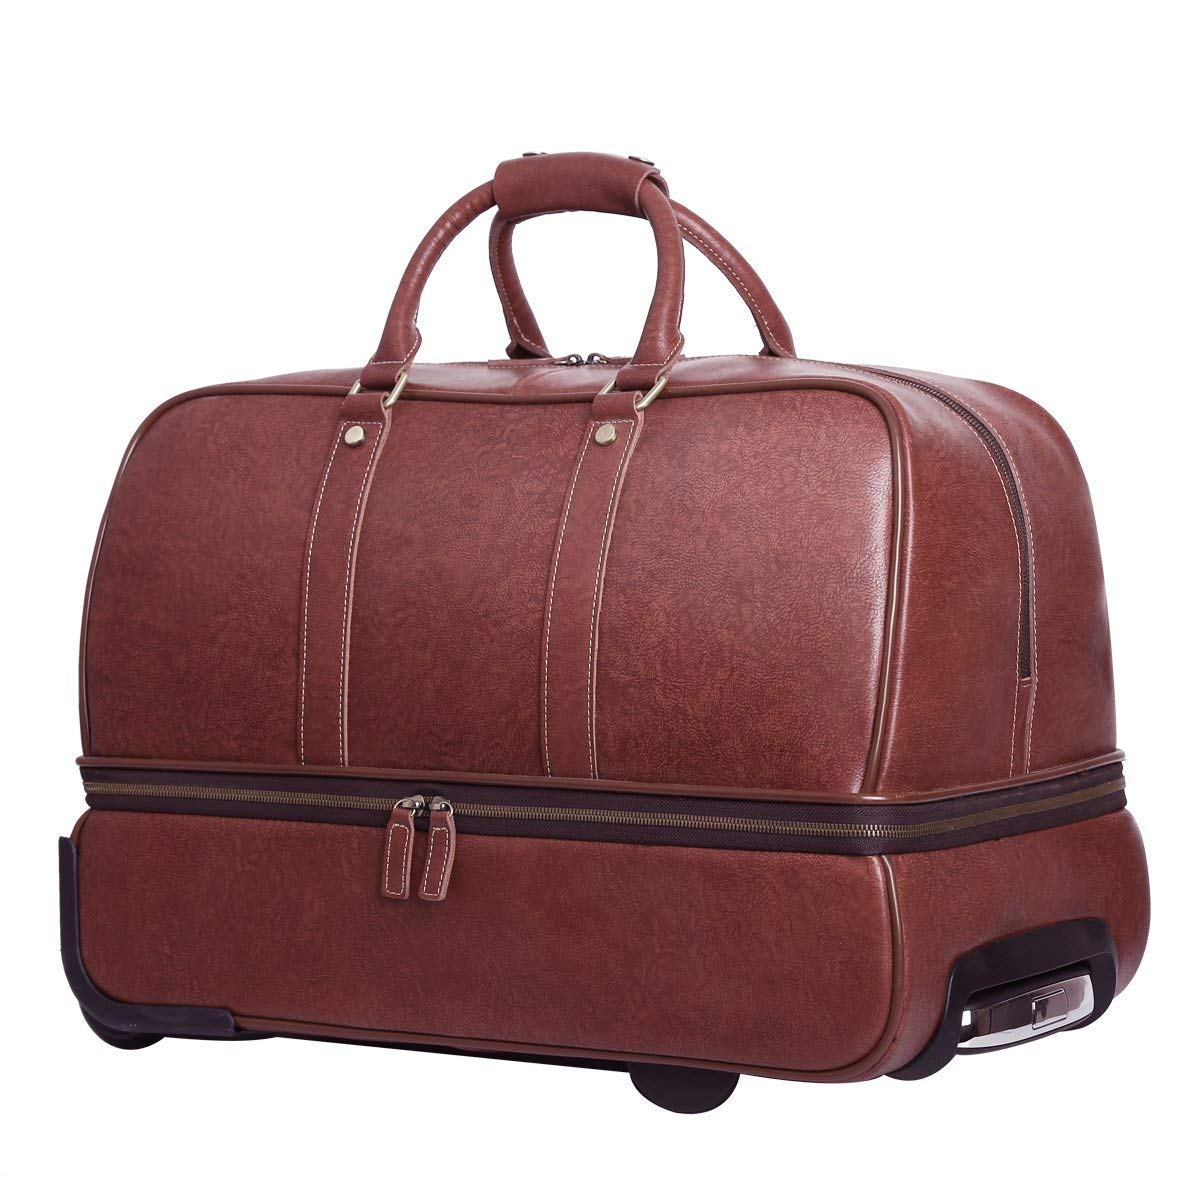 Leathario Leather Luggage travel duffle bag weekend overnight bag (Burgendy)